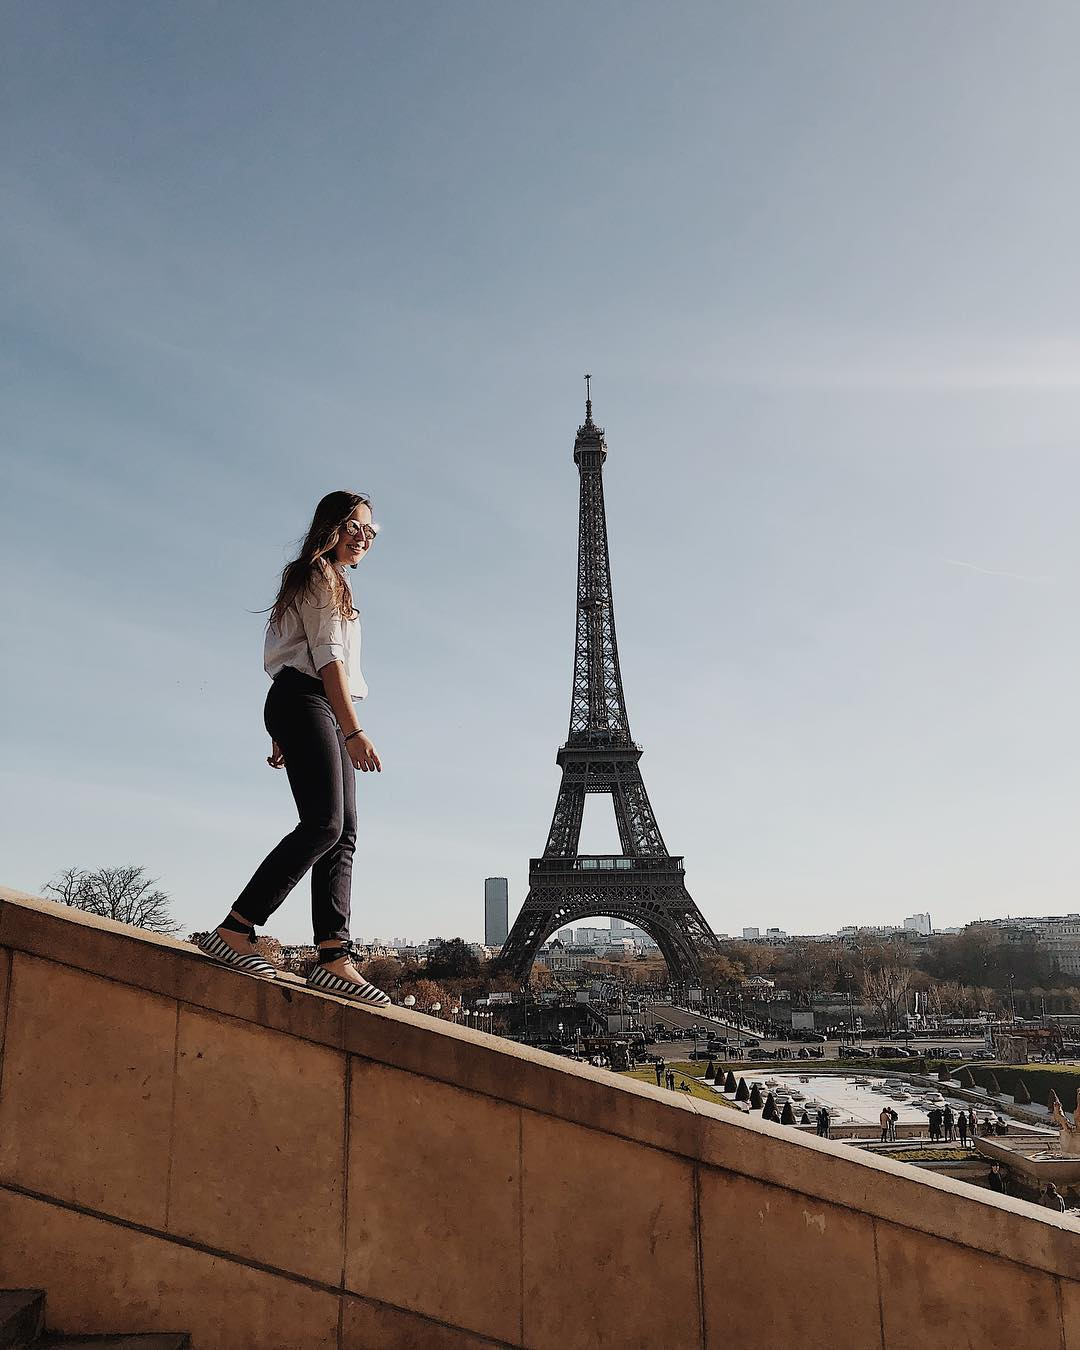 Top 10 Countries That Attract The Most Tourists - France